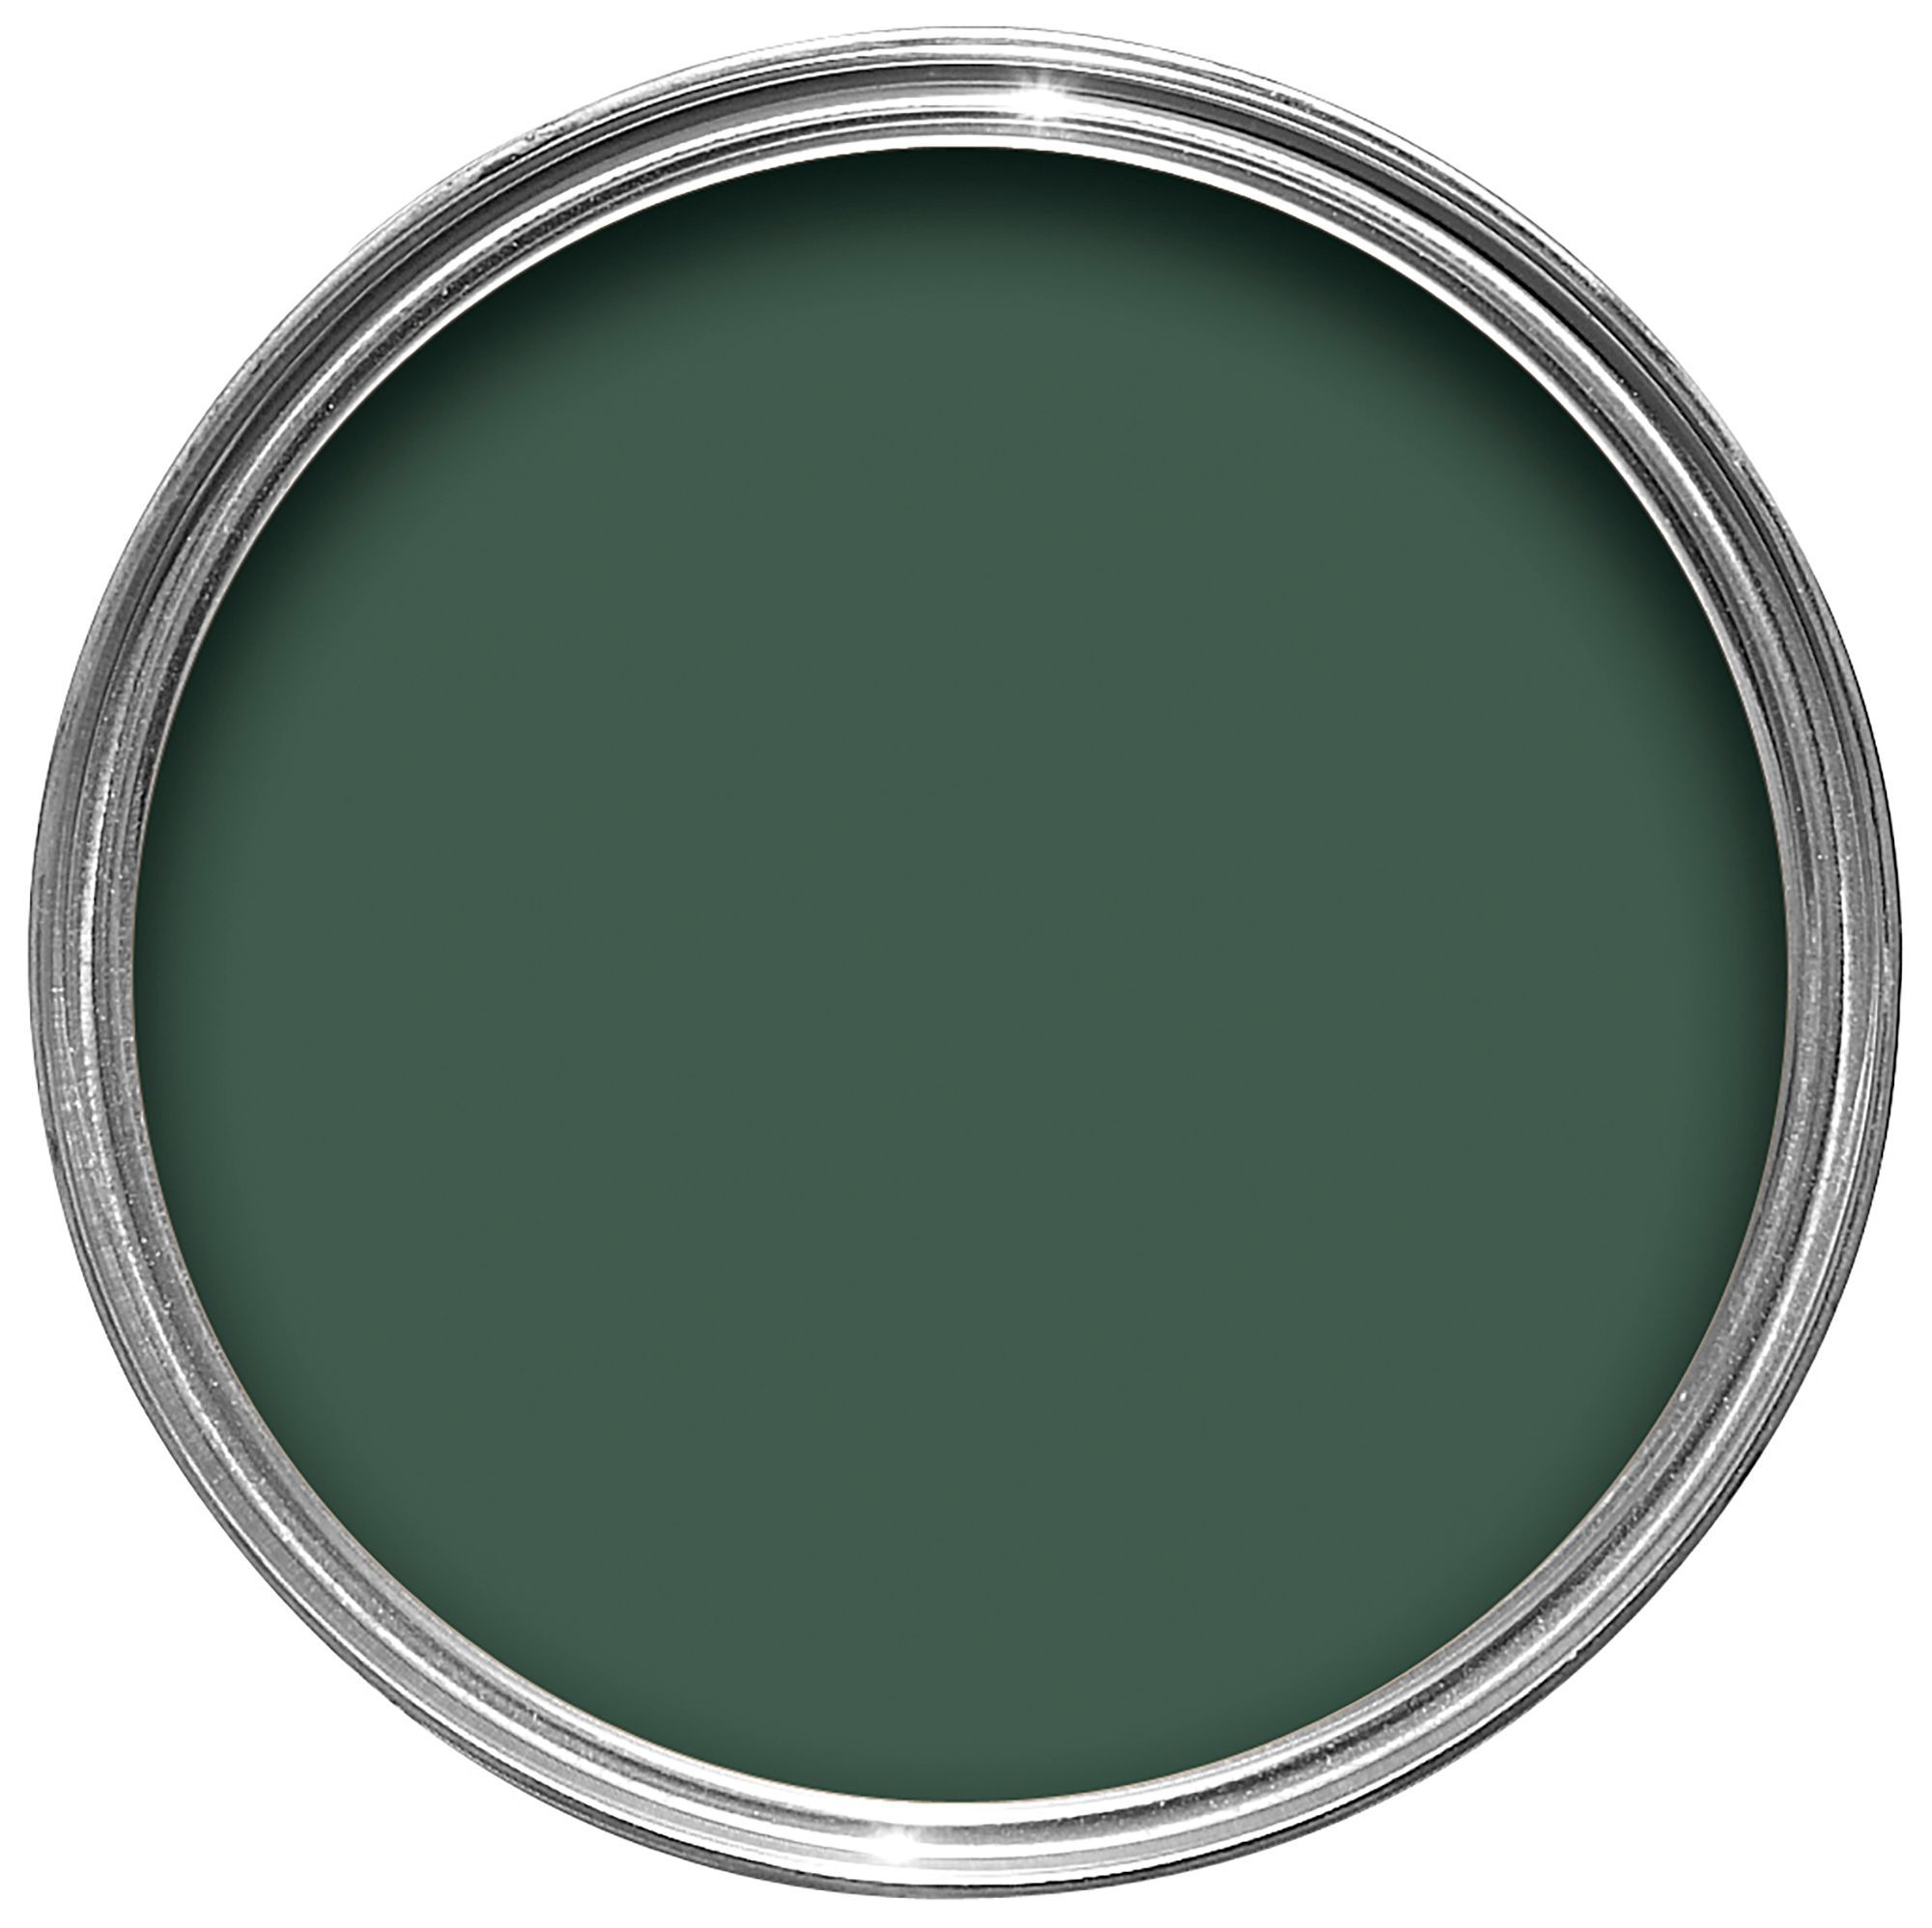 Dulux weathershield external highland green gloss paint 750ml departments diy at b q - Dulux exterior gloss paint style ...